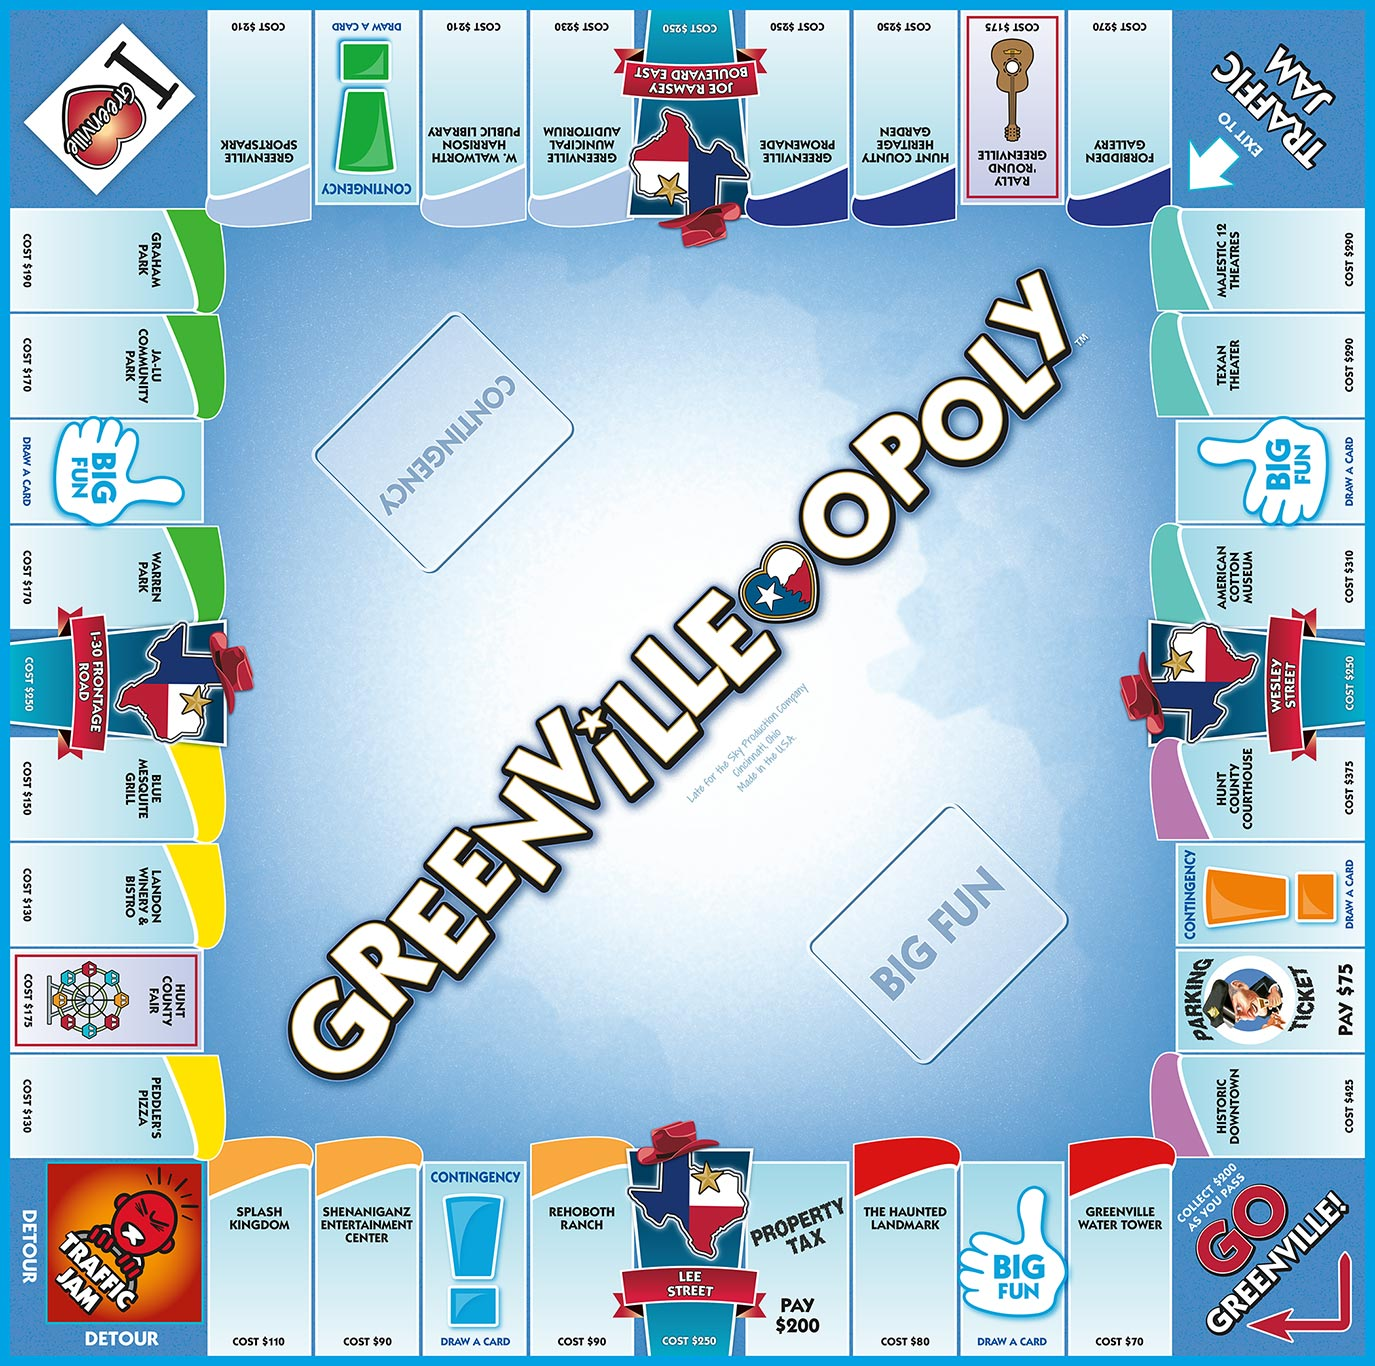 GREENVILLE-OPOLY Board Game